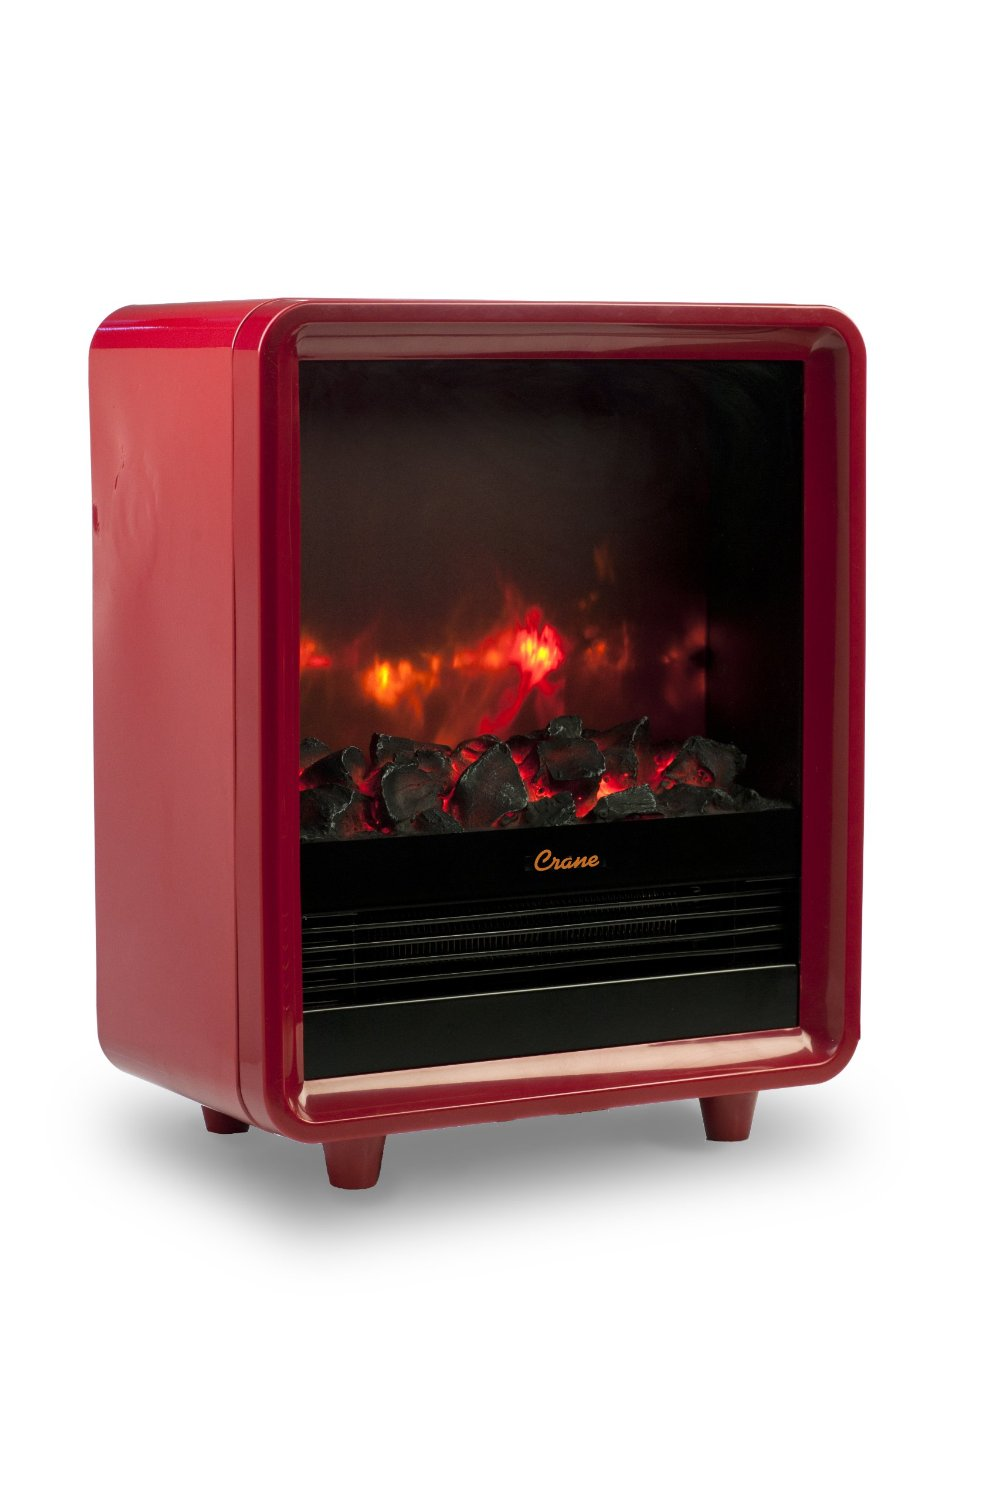 crane safe electric fireplace heater christmas wishes gifts